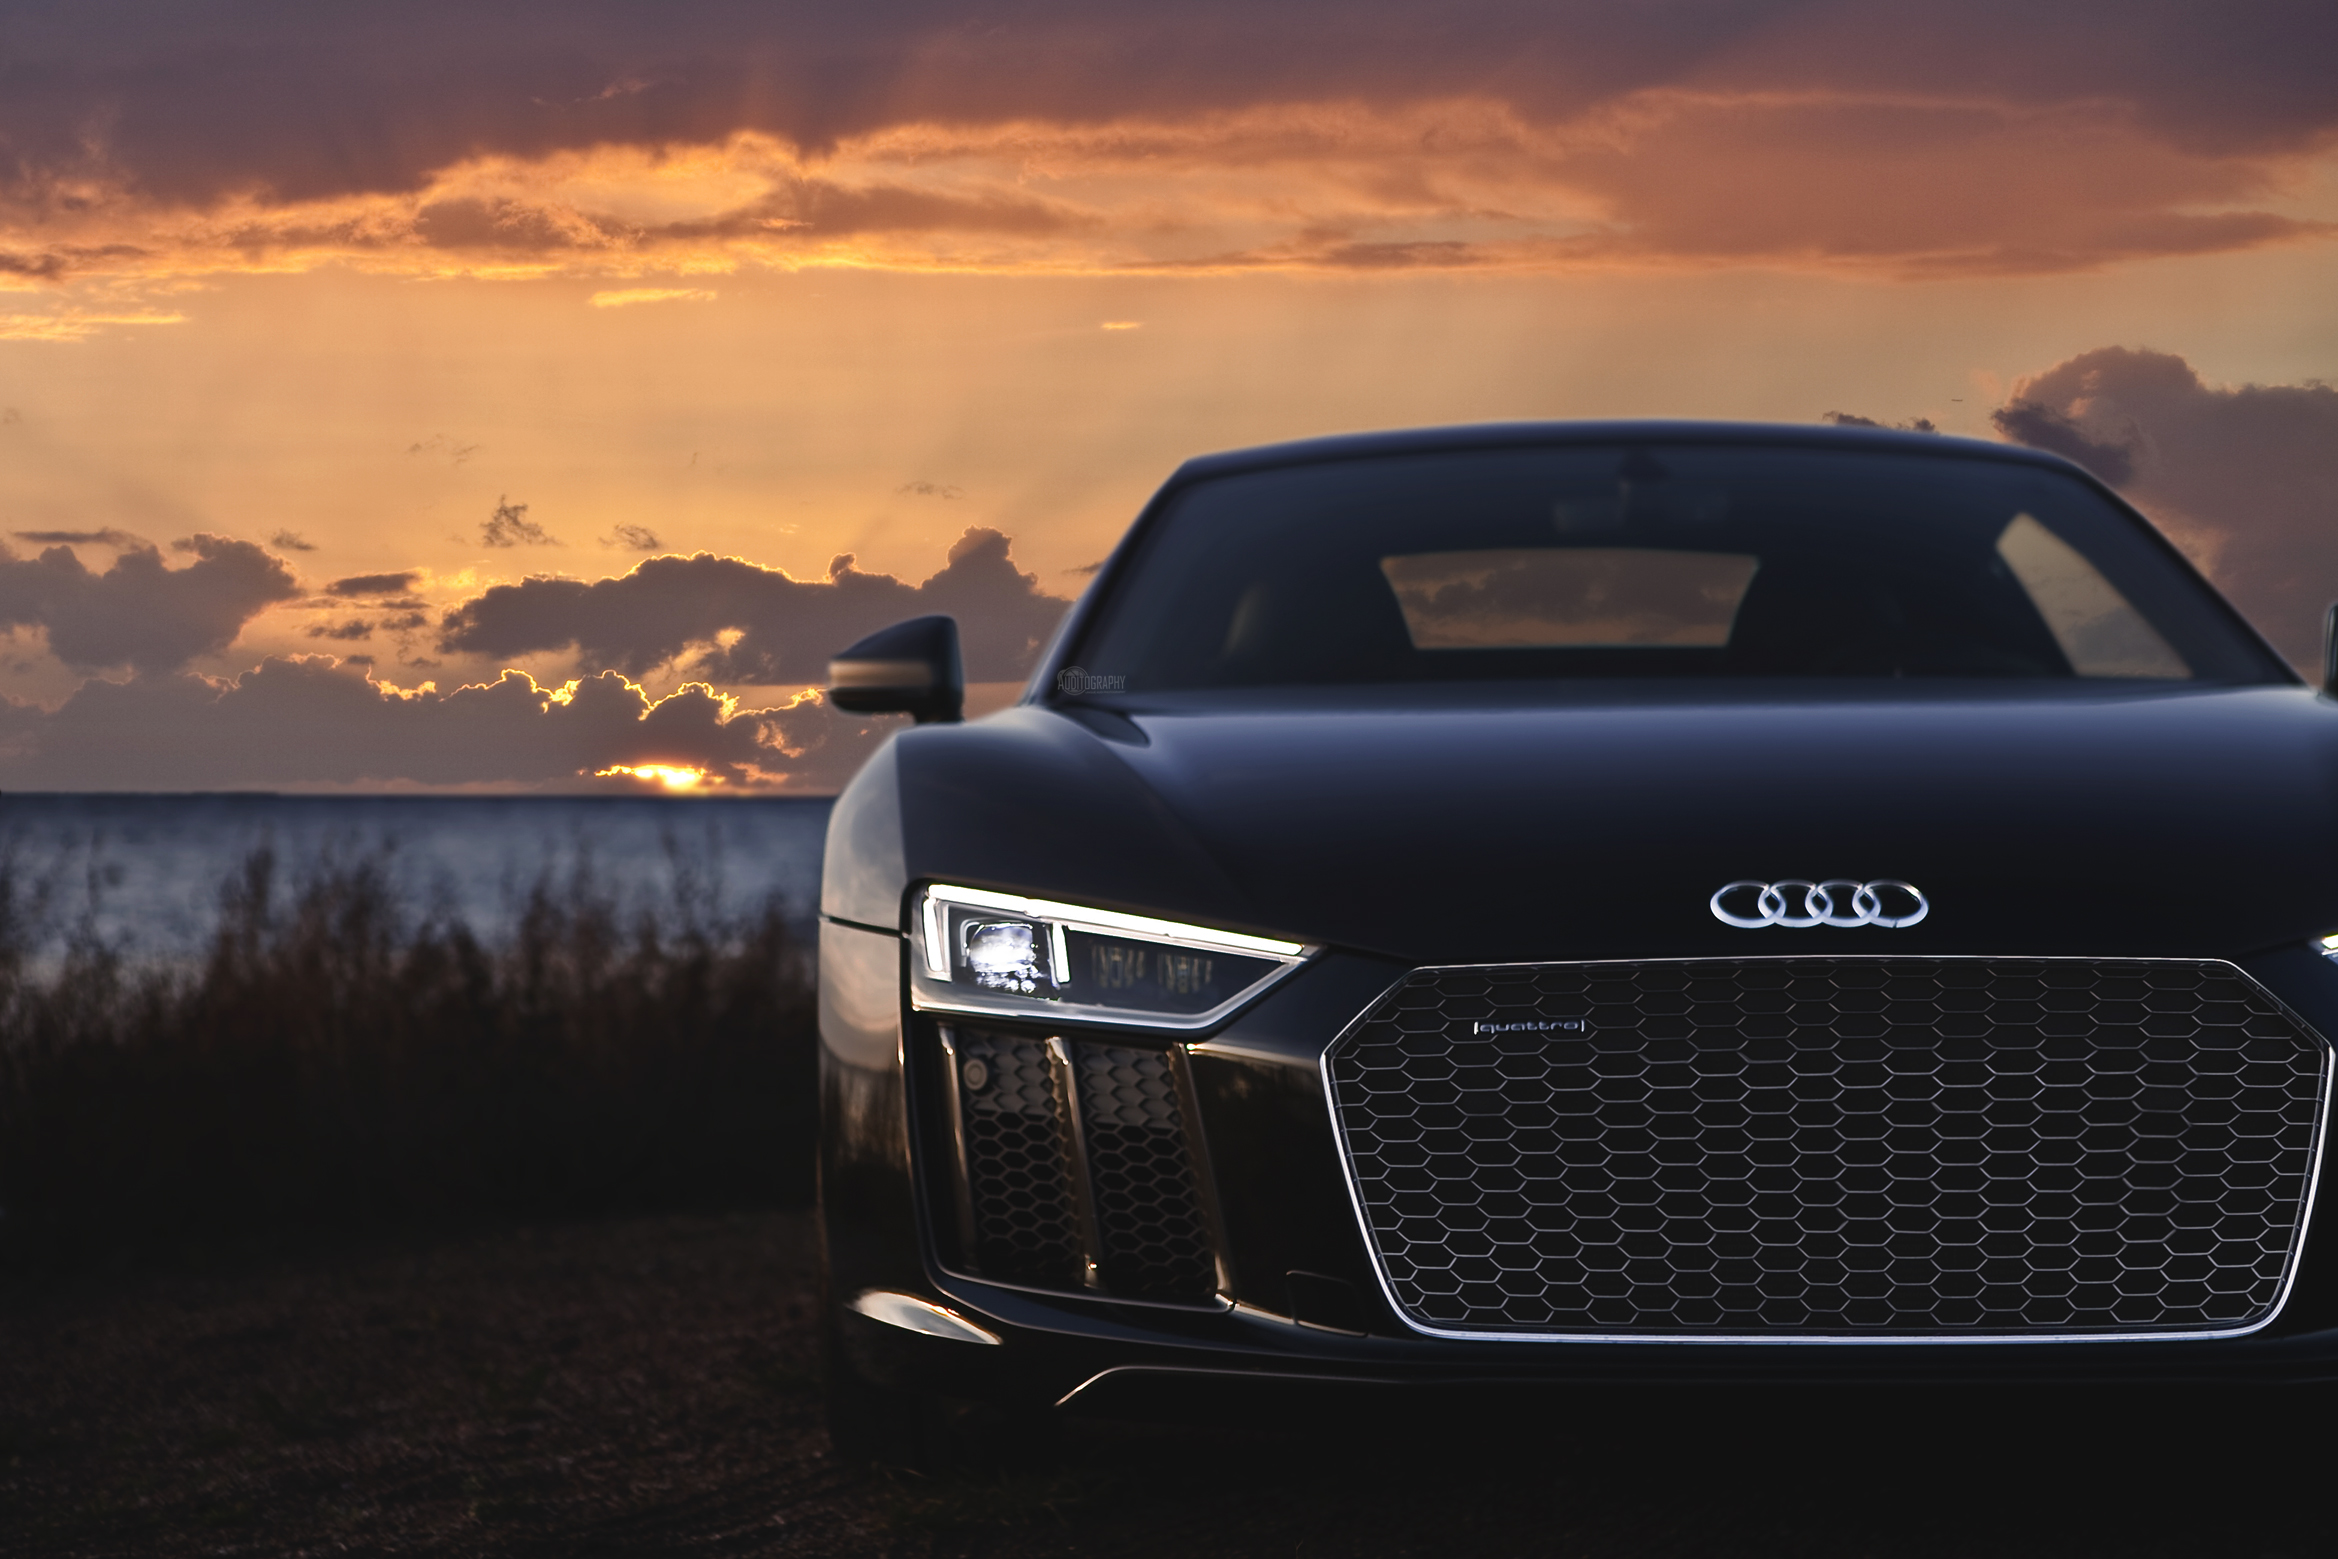 Your Ridiculously Awesome Audi R8 Wallpaper Is Here 2338x1559